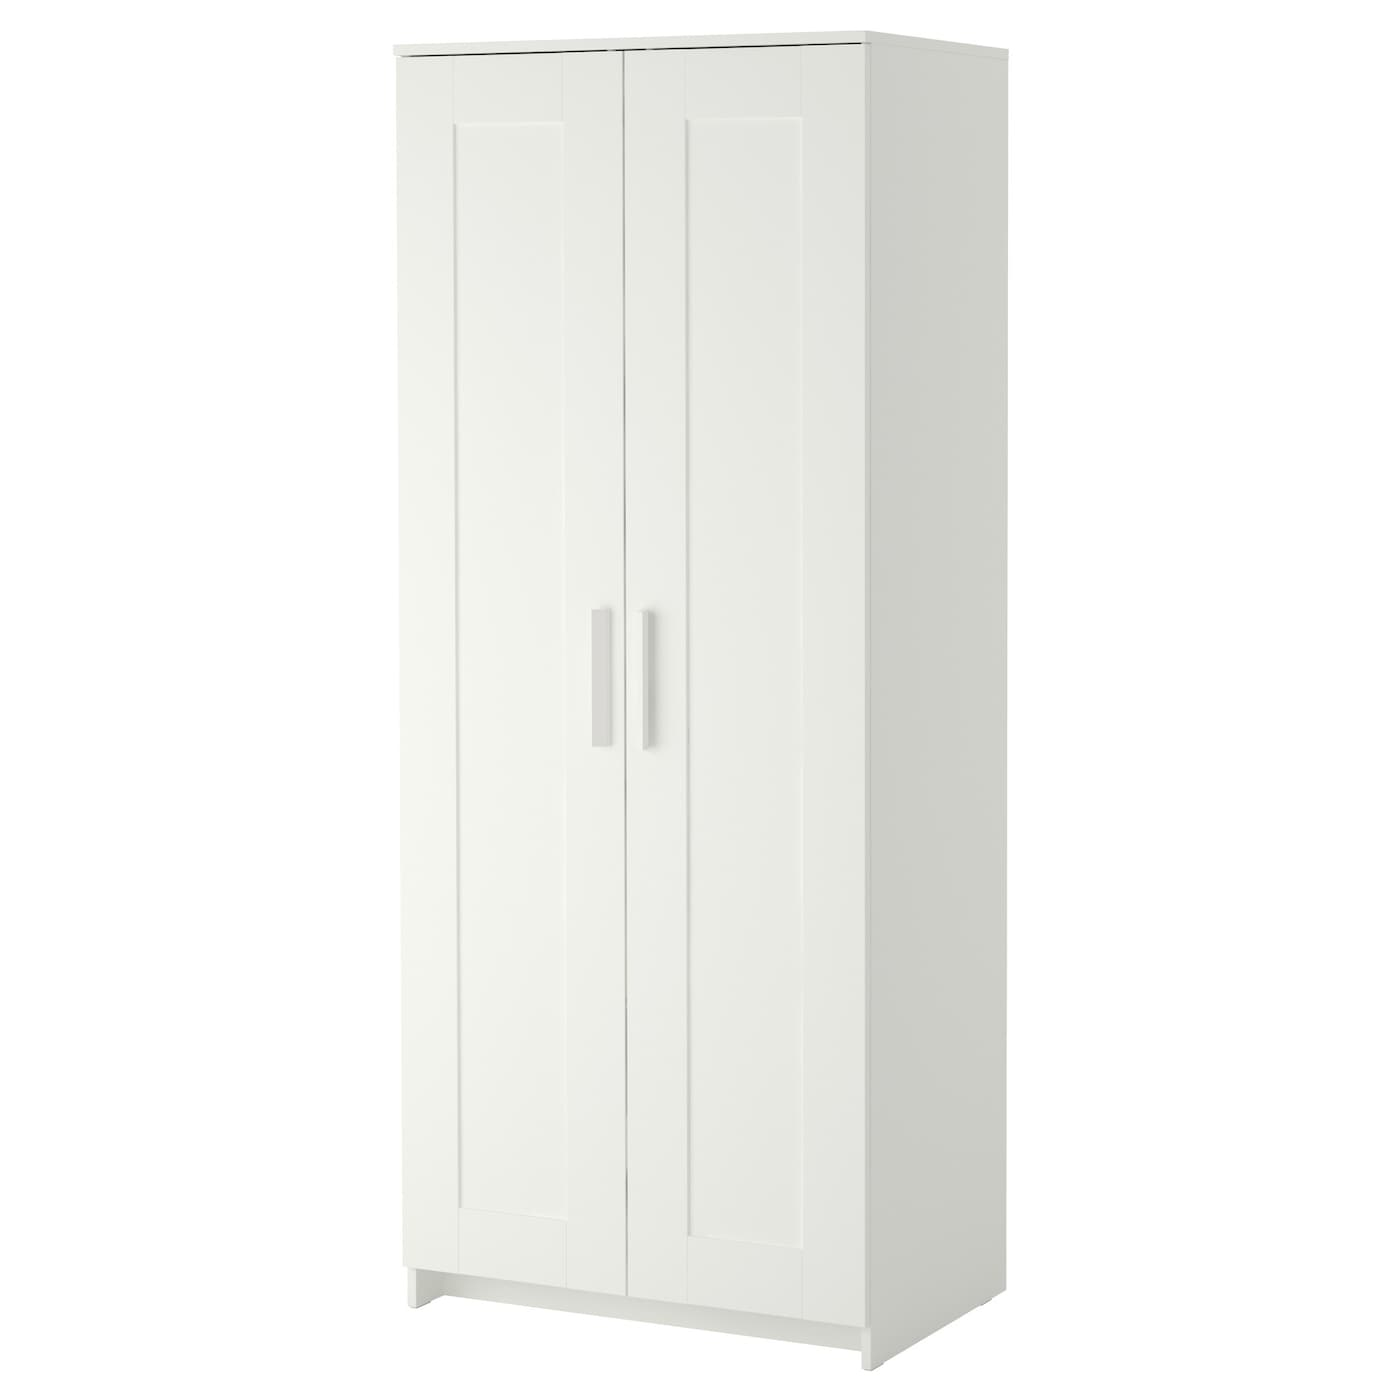 Brimnes wardrobe with 2 doors white 78x190 cm ikea for Schrank 60 breit 30 tief